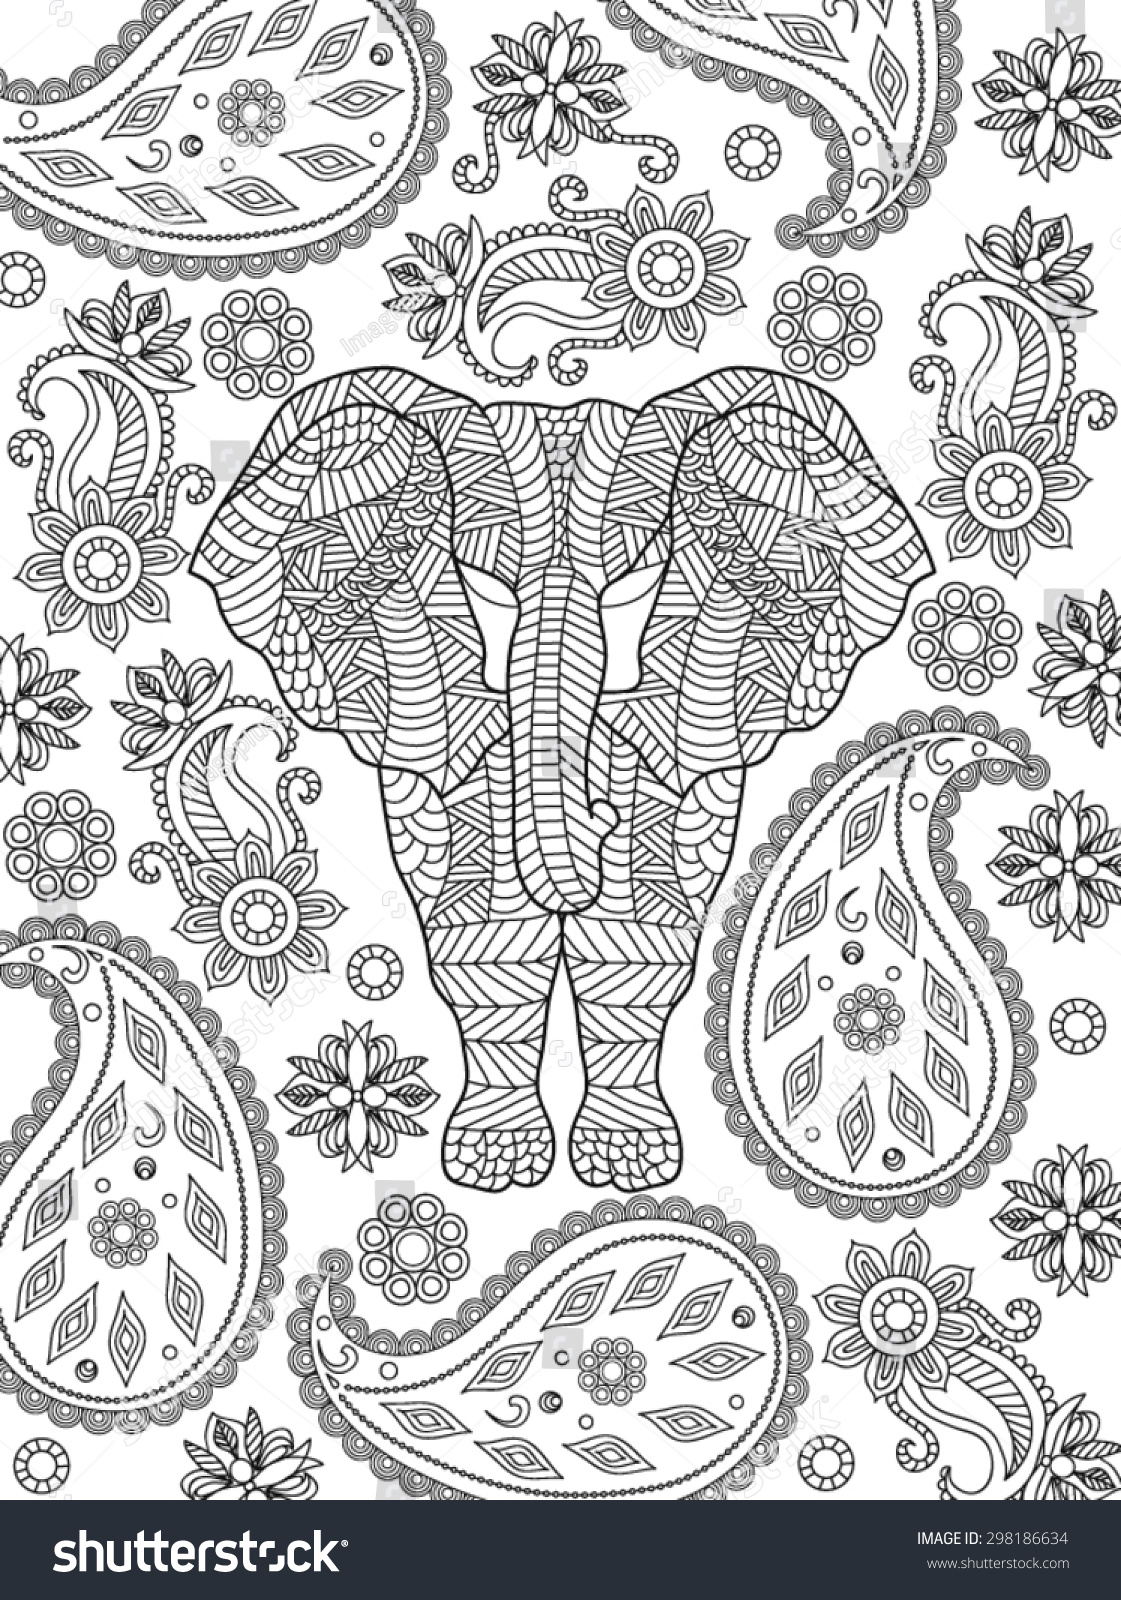 hand drawn elephant coloring page stock vector 298186634